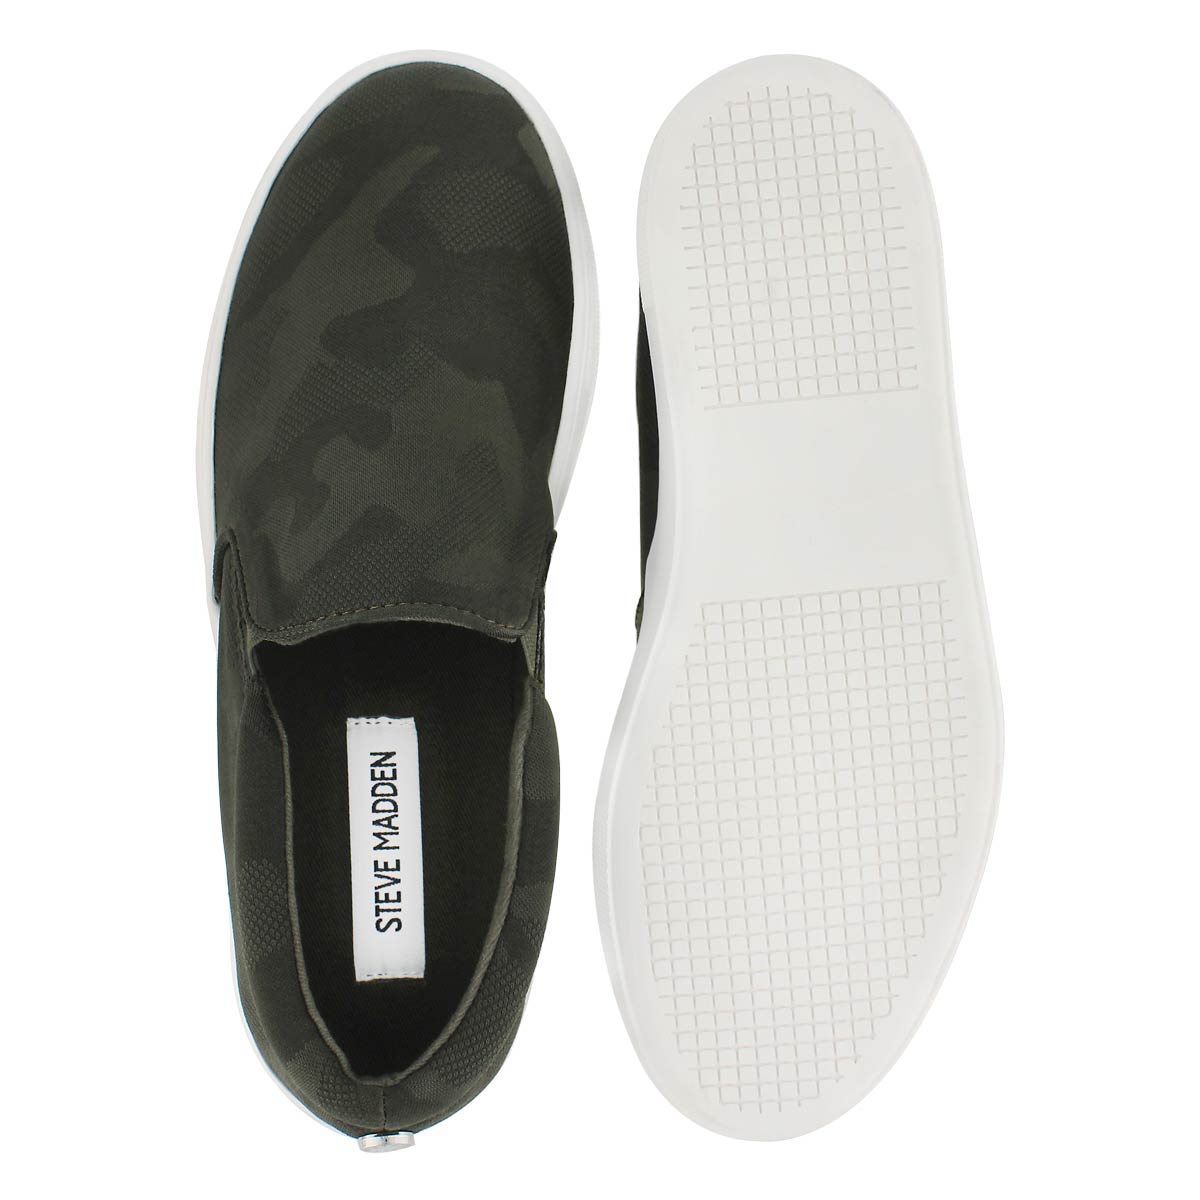 Lds Gills camo casual slip on shoe